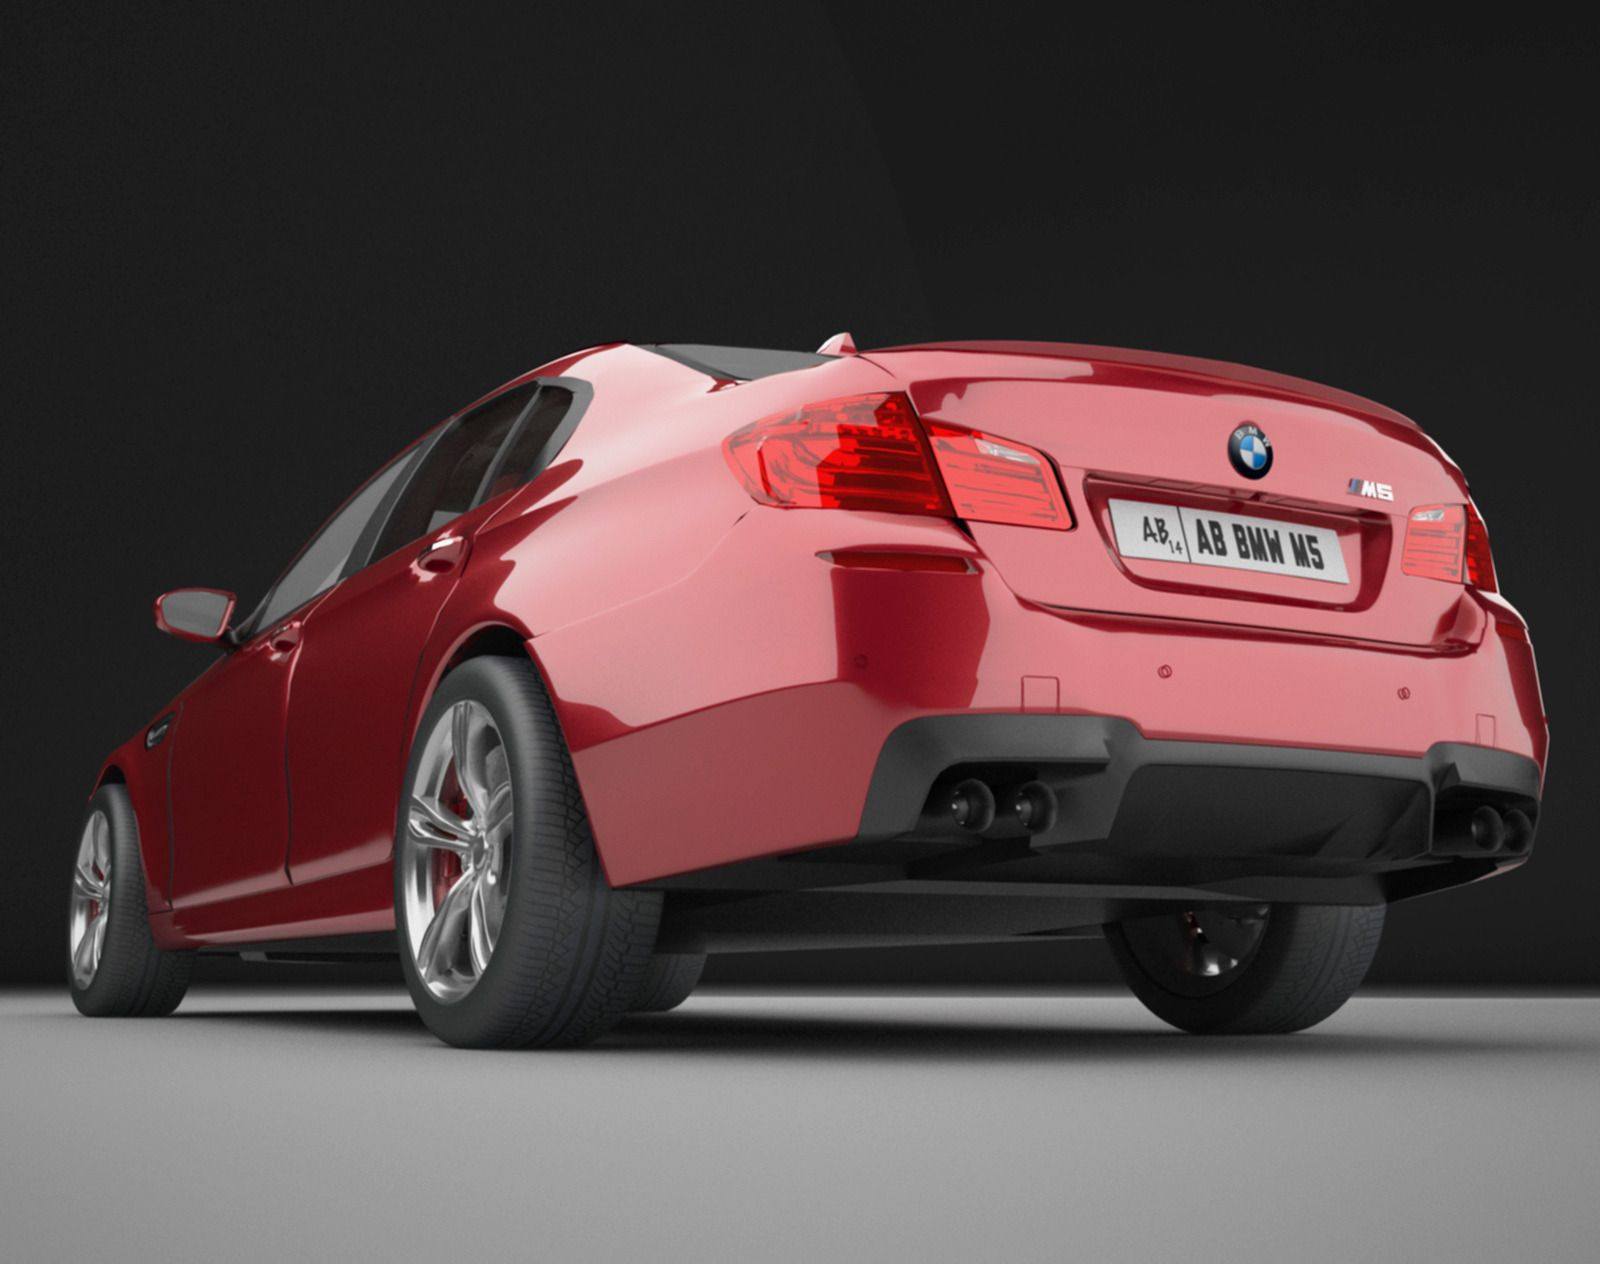 Bmw F10 M5 With Detailed Interior Vray Bmw Vray Interior